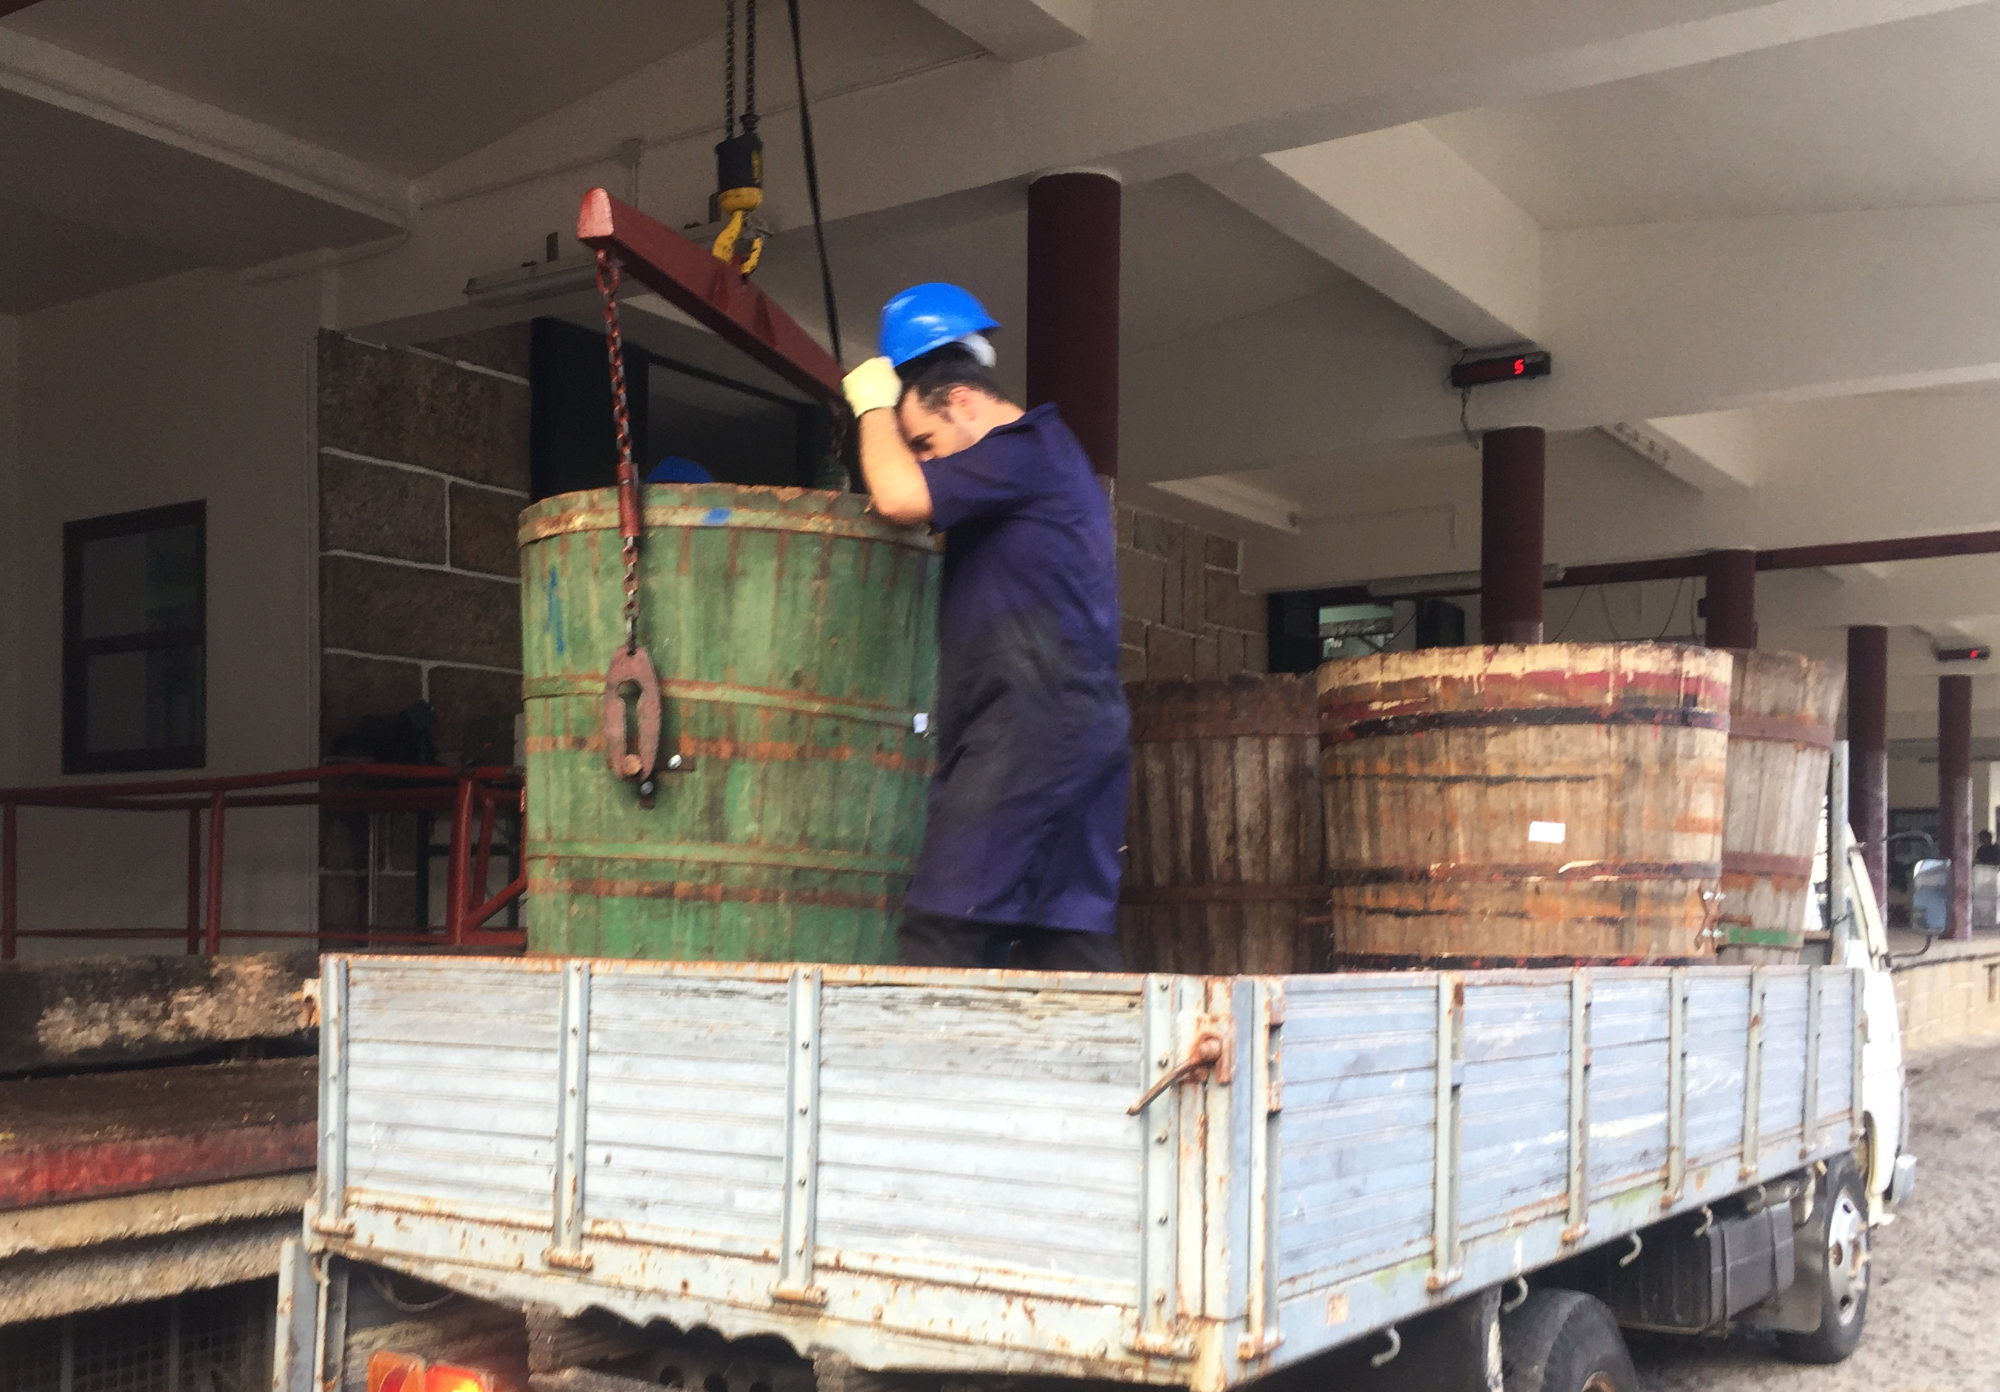 Transferring the wooden barrels known as 'dornas'